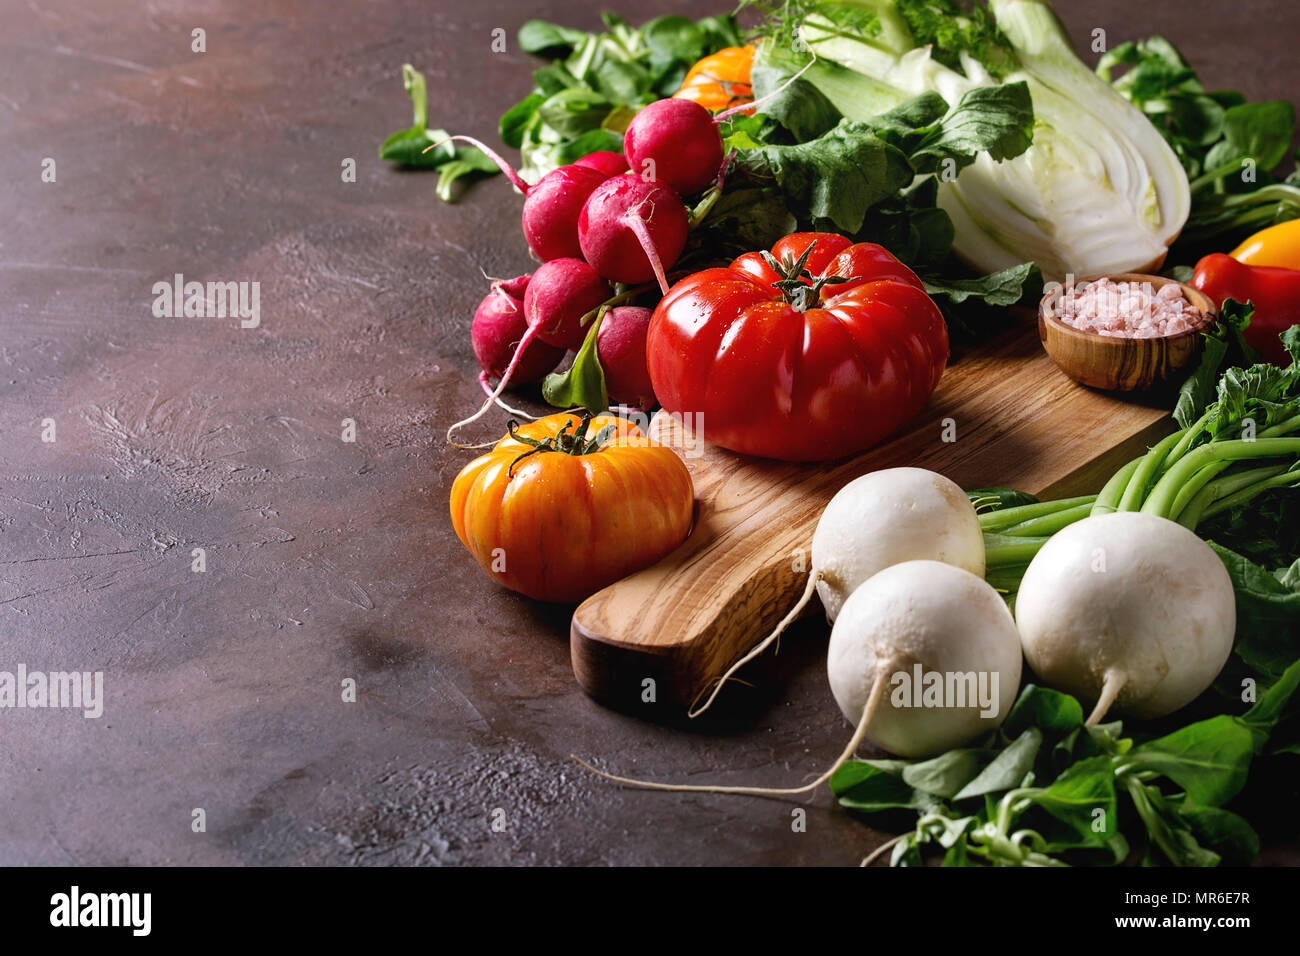 Variety of wet raw fresh organic colorful vegetables tomatoes, radish with leaves, fennel, paprika, salt for salad on wooden chopping board over dark  Stock Photo